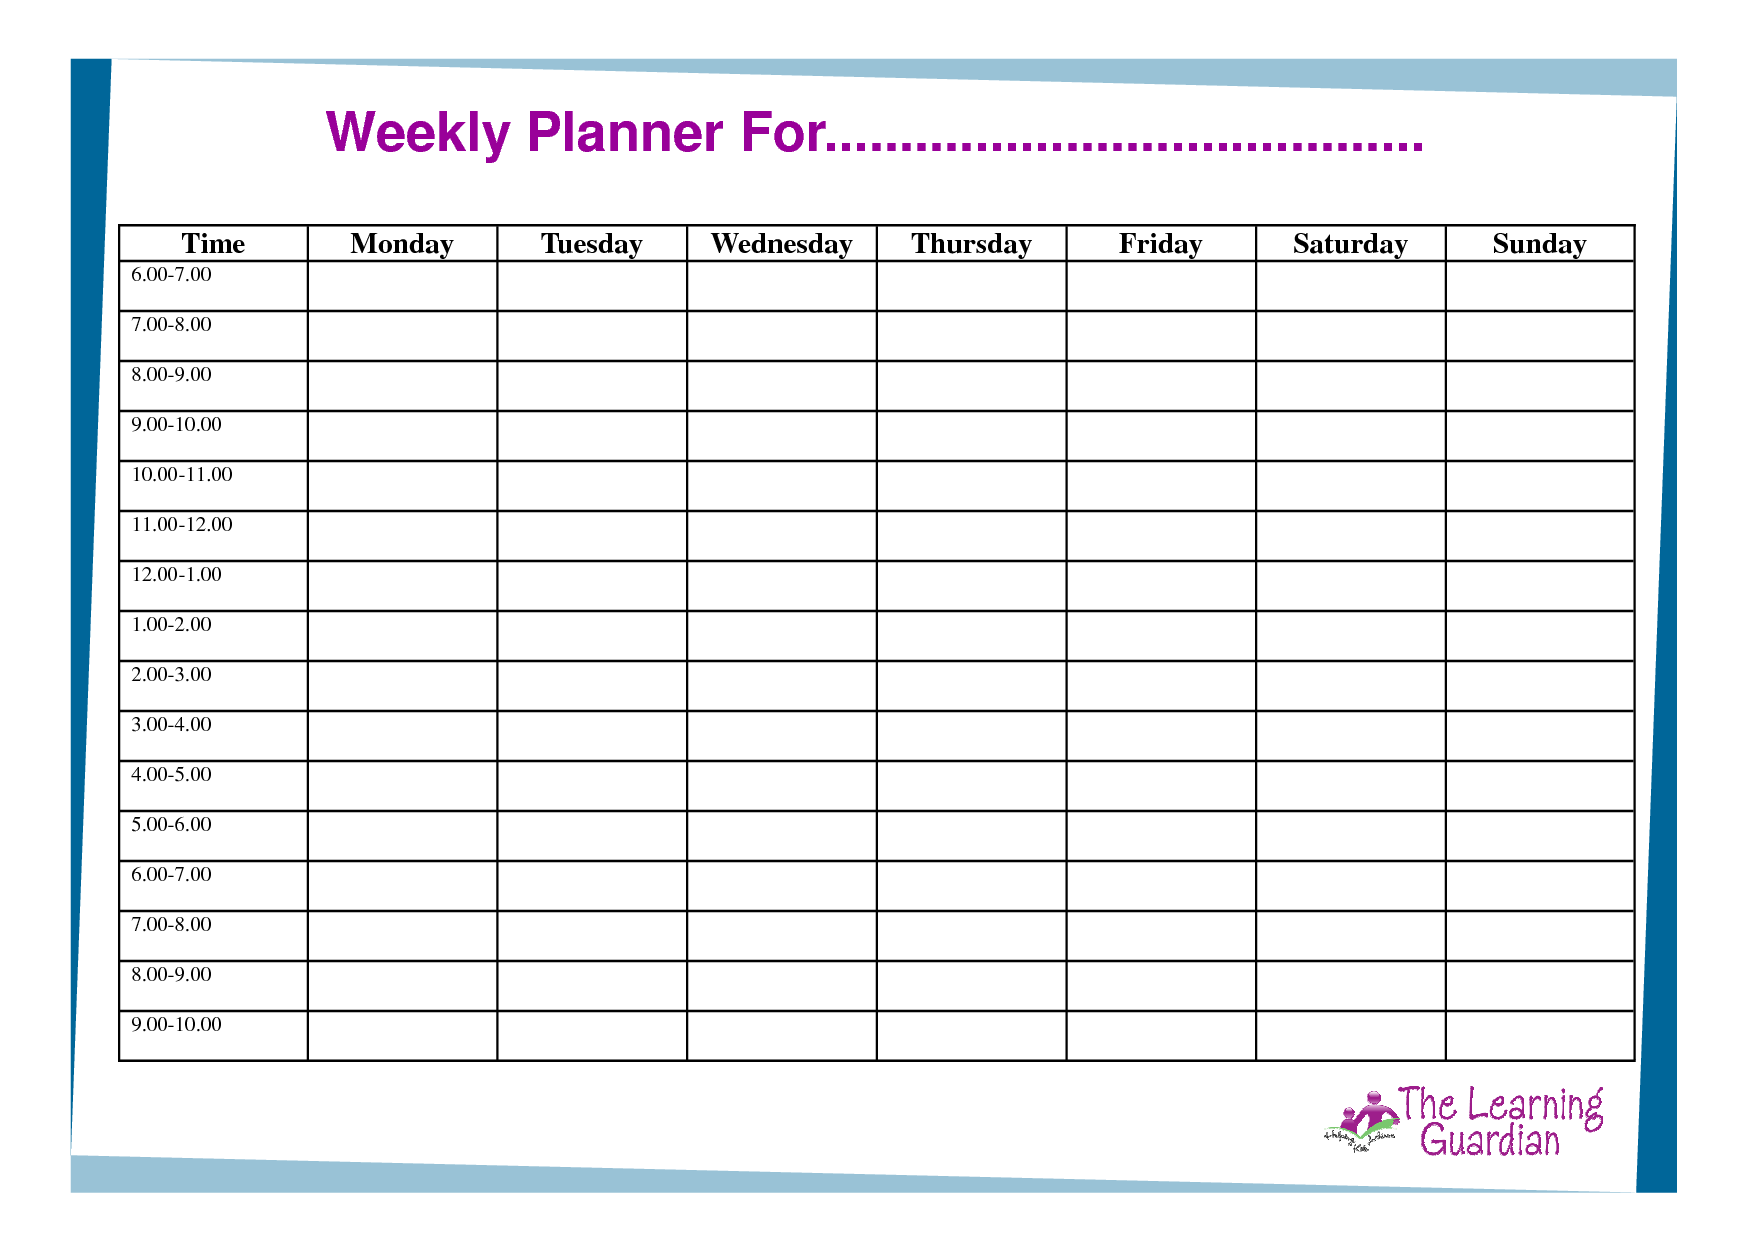 Free Printable Weekly Calendar Templates  Weekly Planner For Time